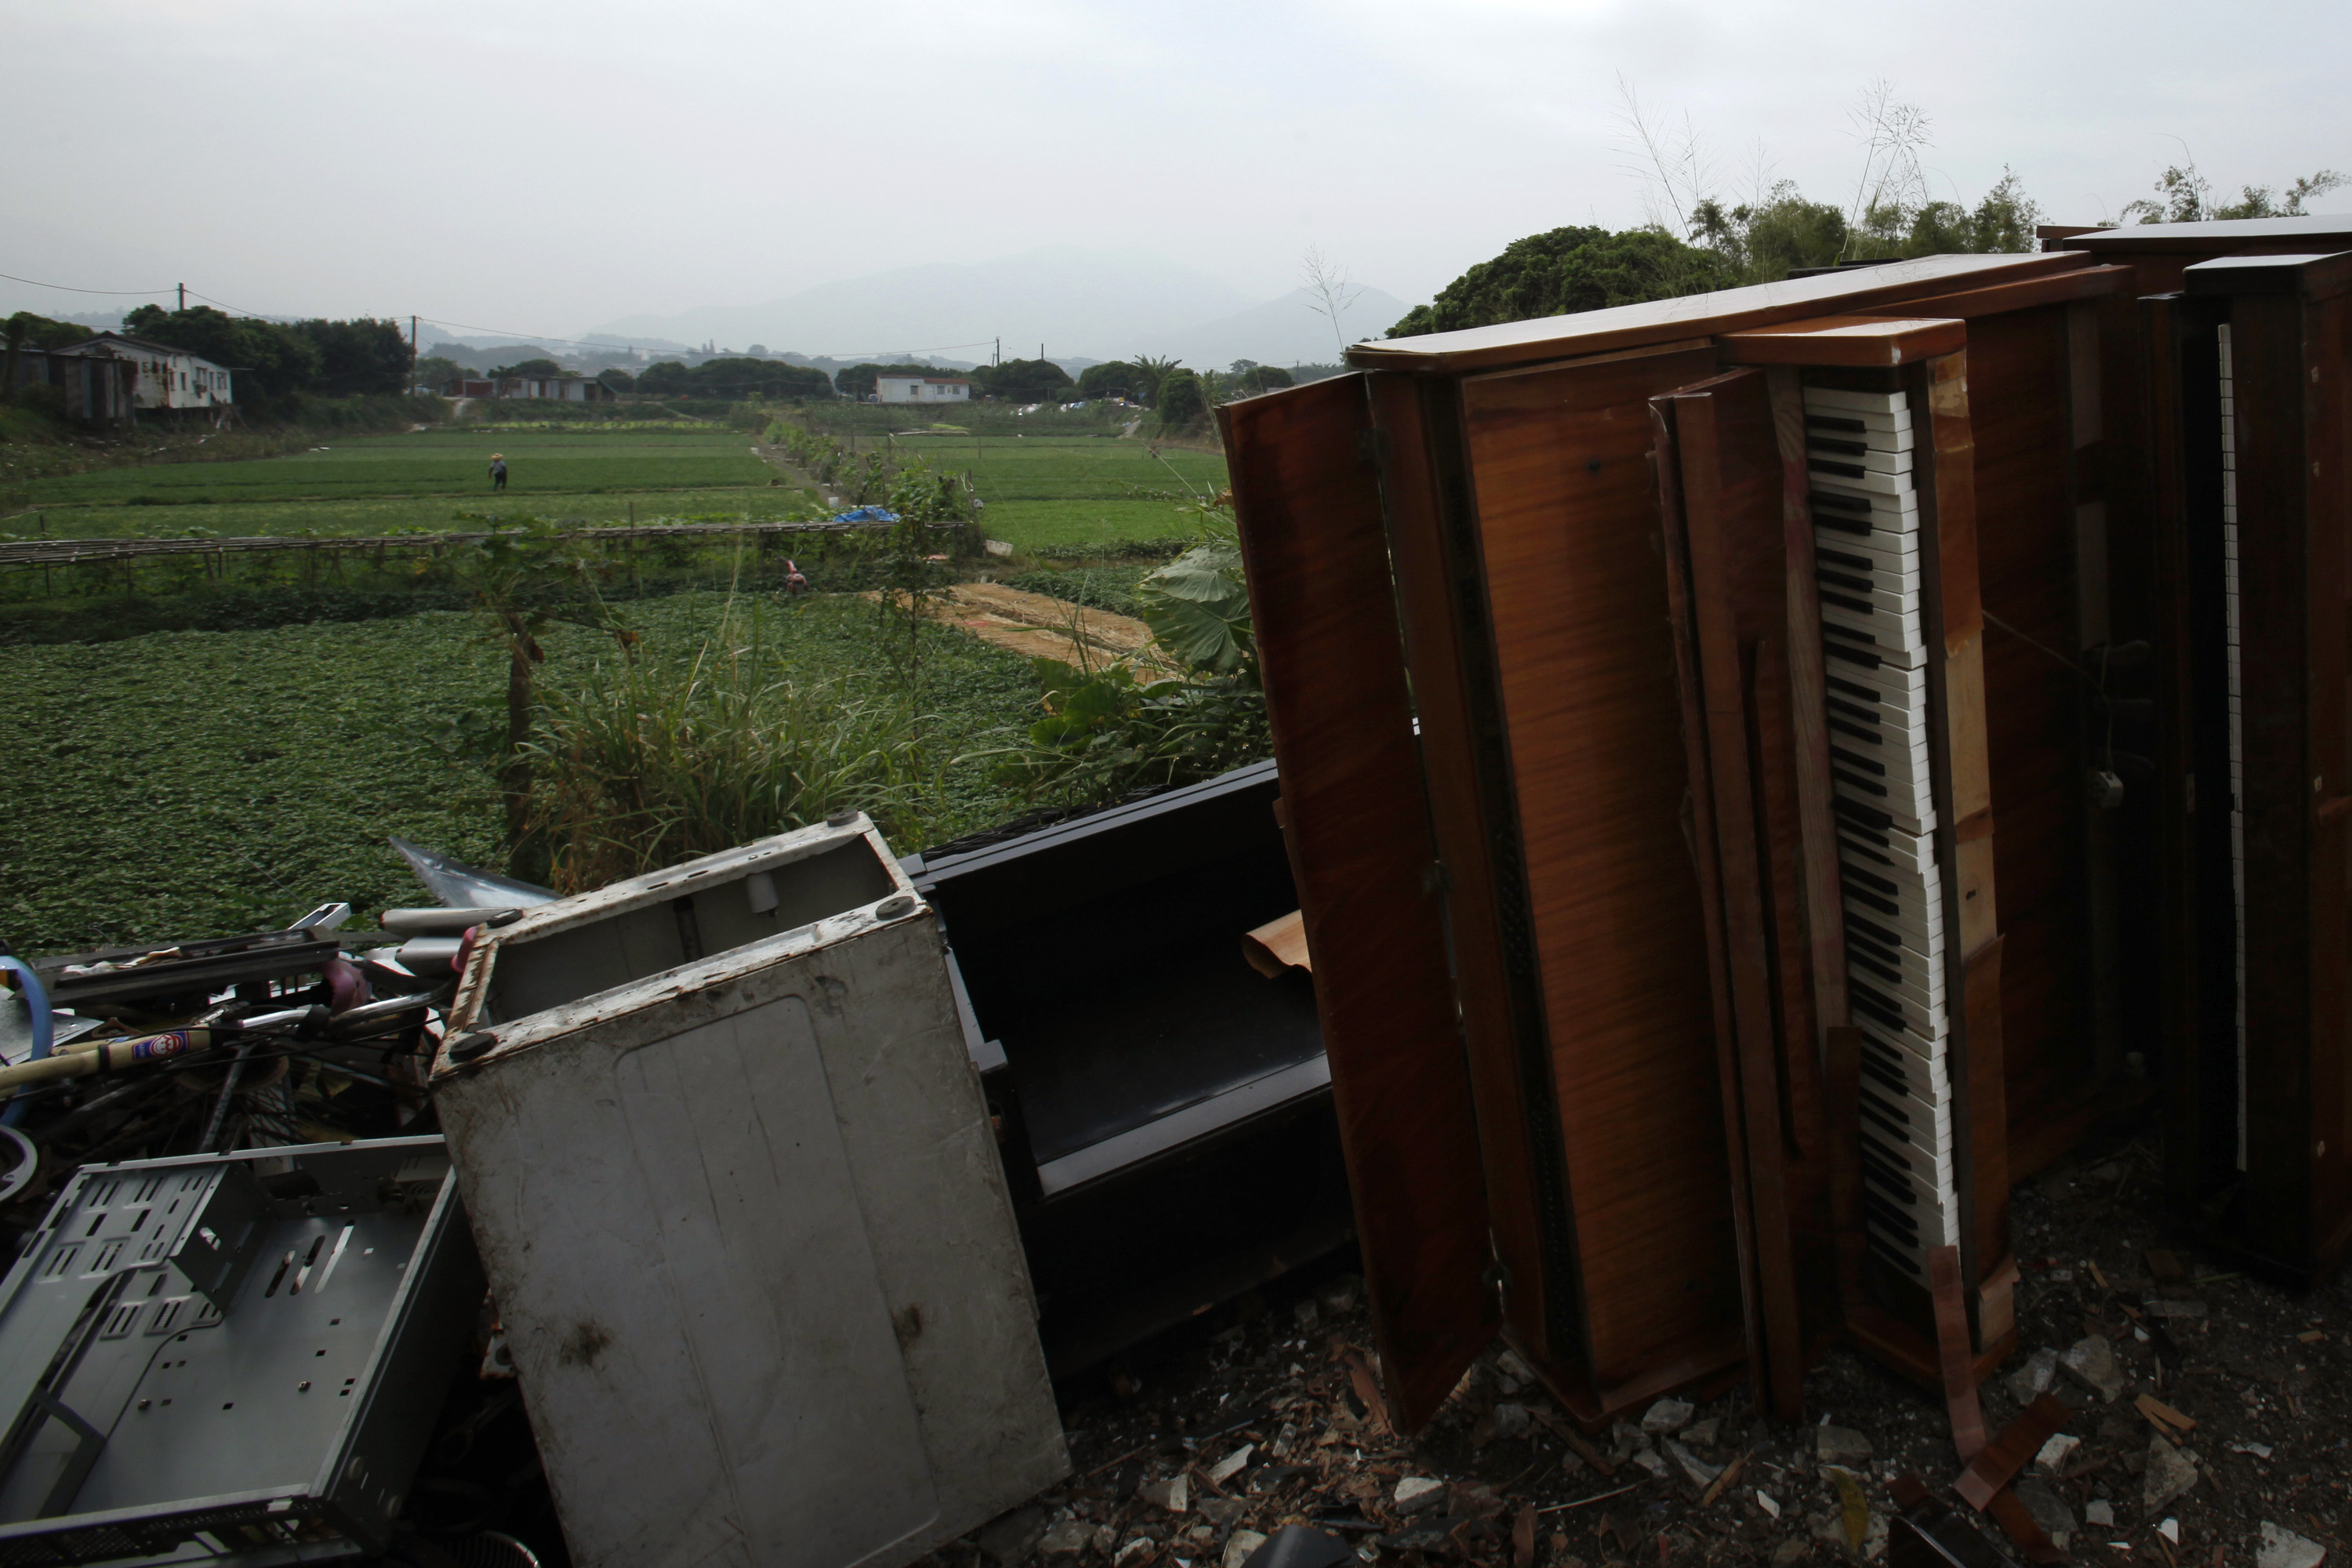 Unwanted items are dumped near farms in Hong Kong's New Territories on Nov. 6, 2013